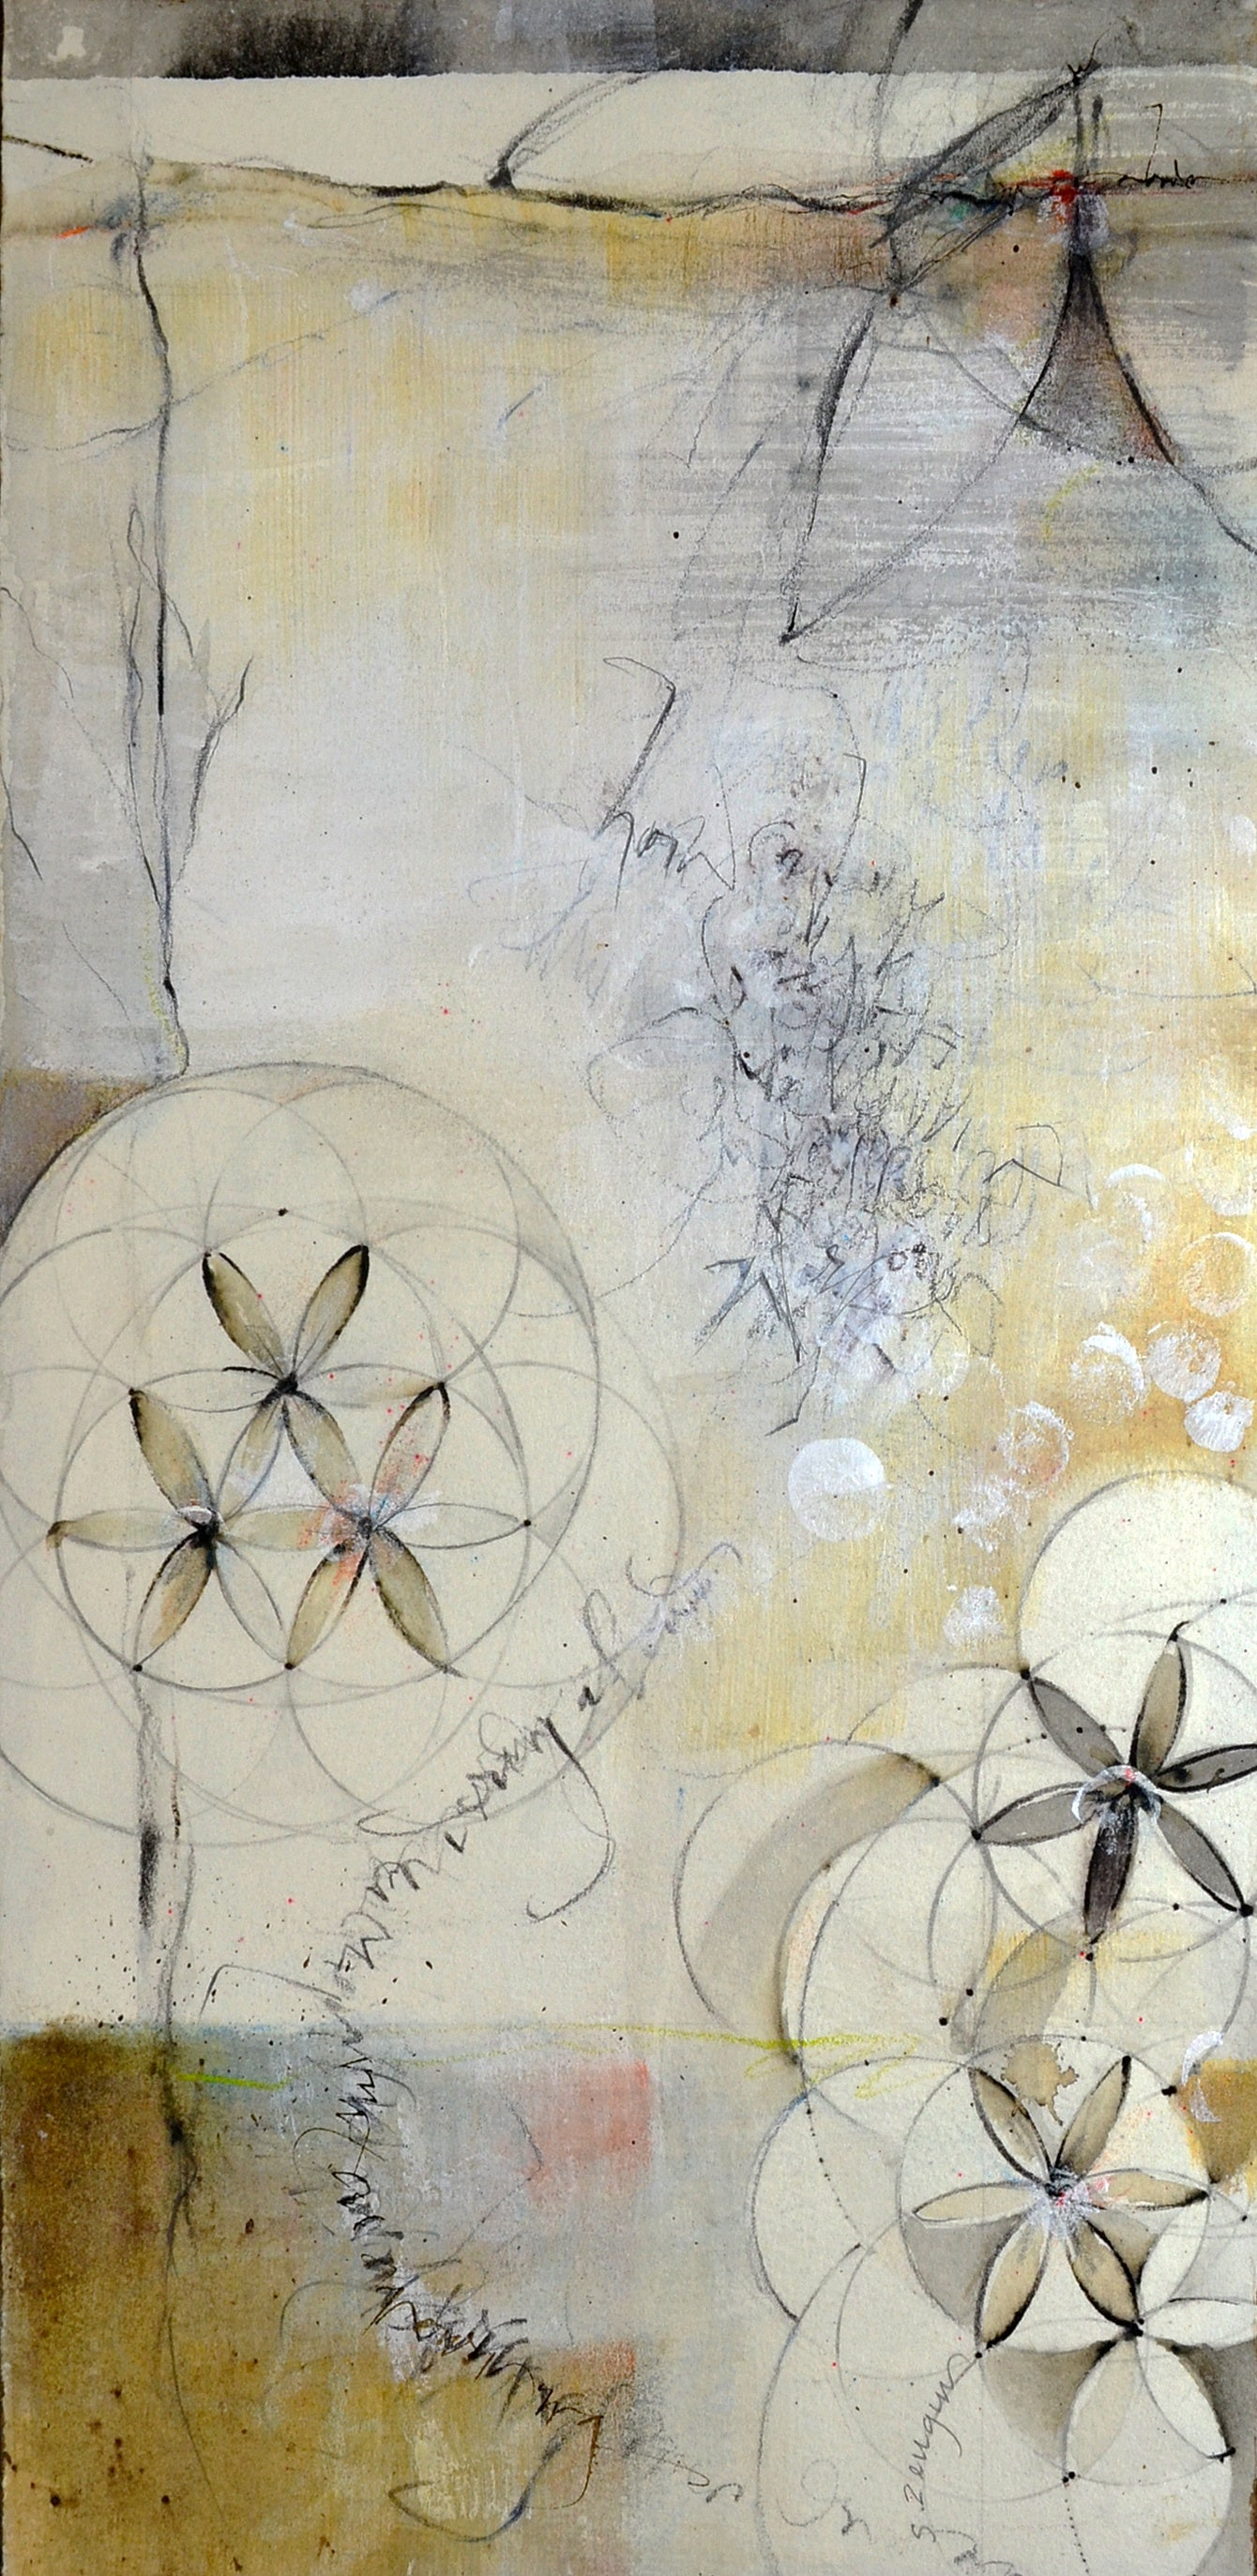 Moon Series A mixed media by Sharon Zeugin